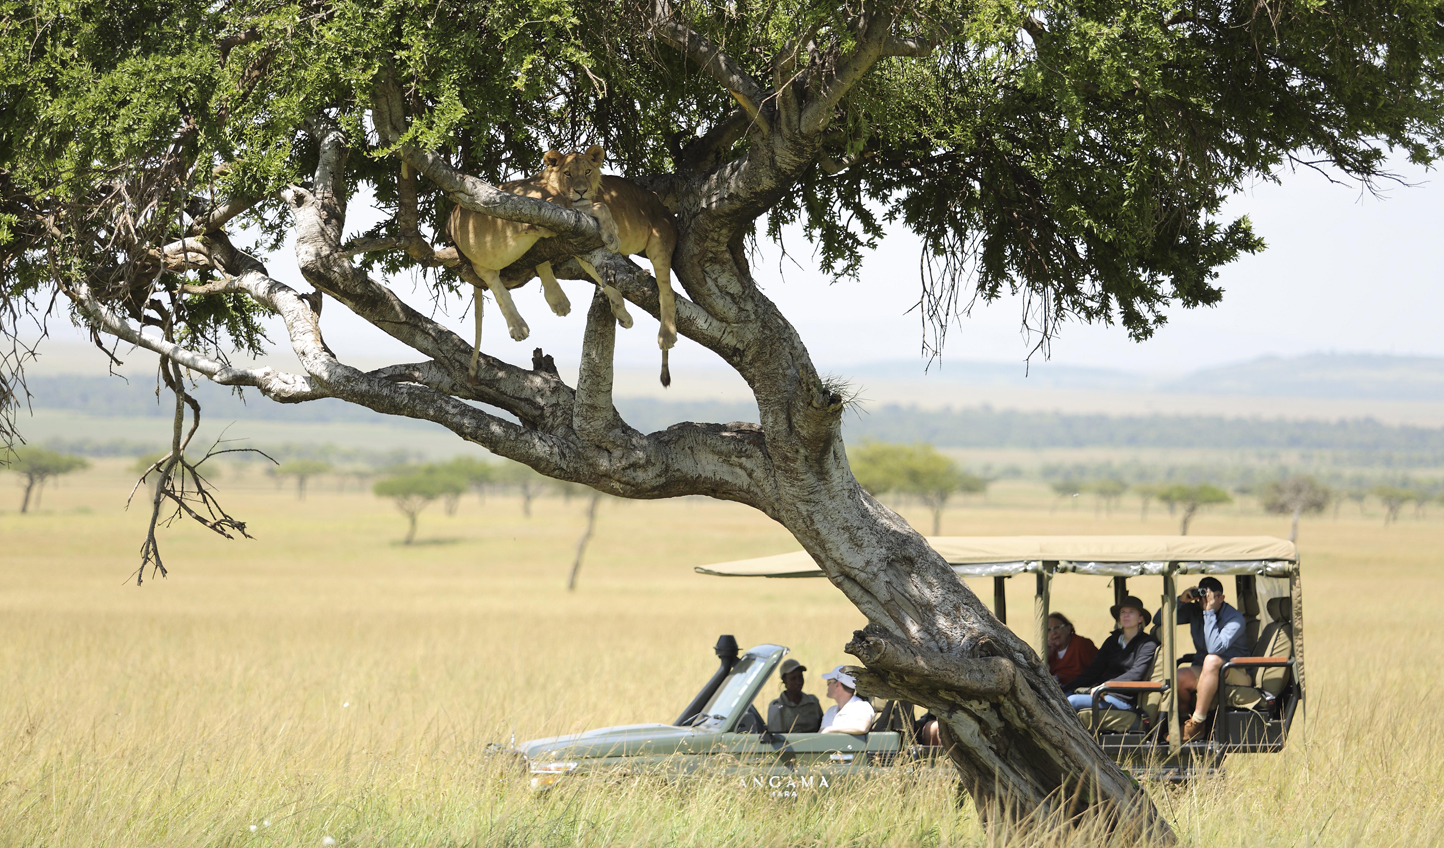 Rumble across the plains on game drives